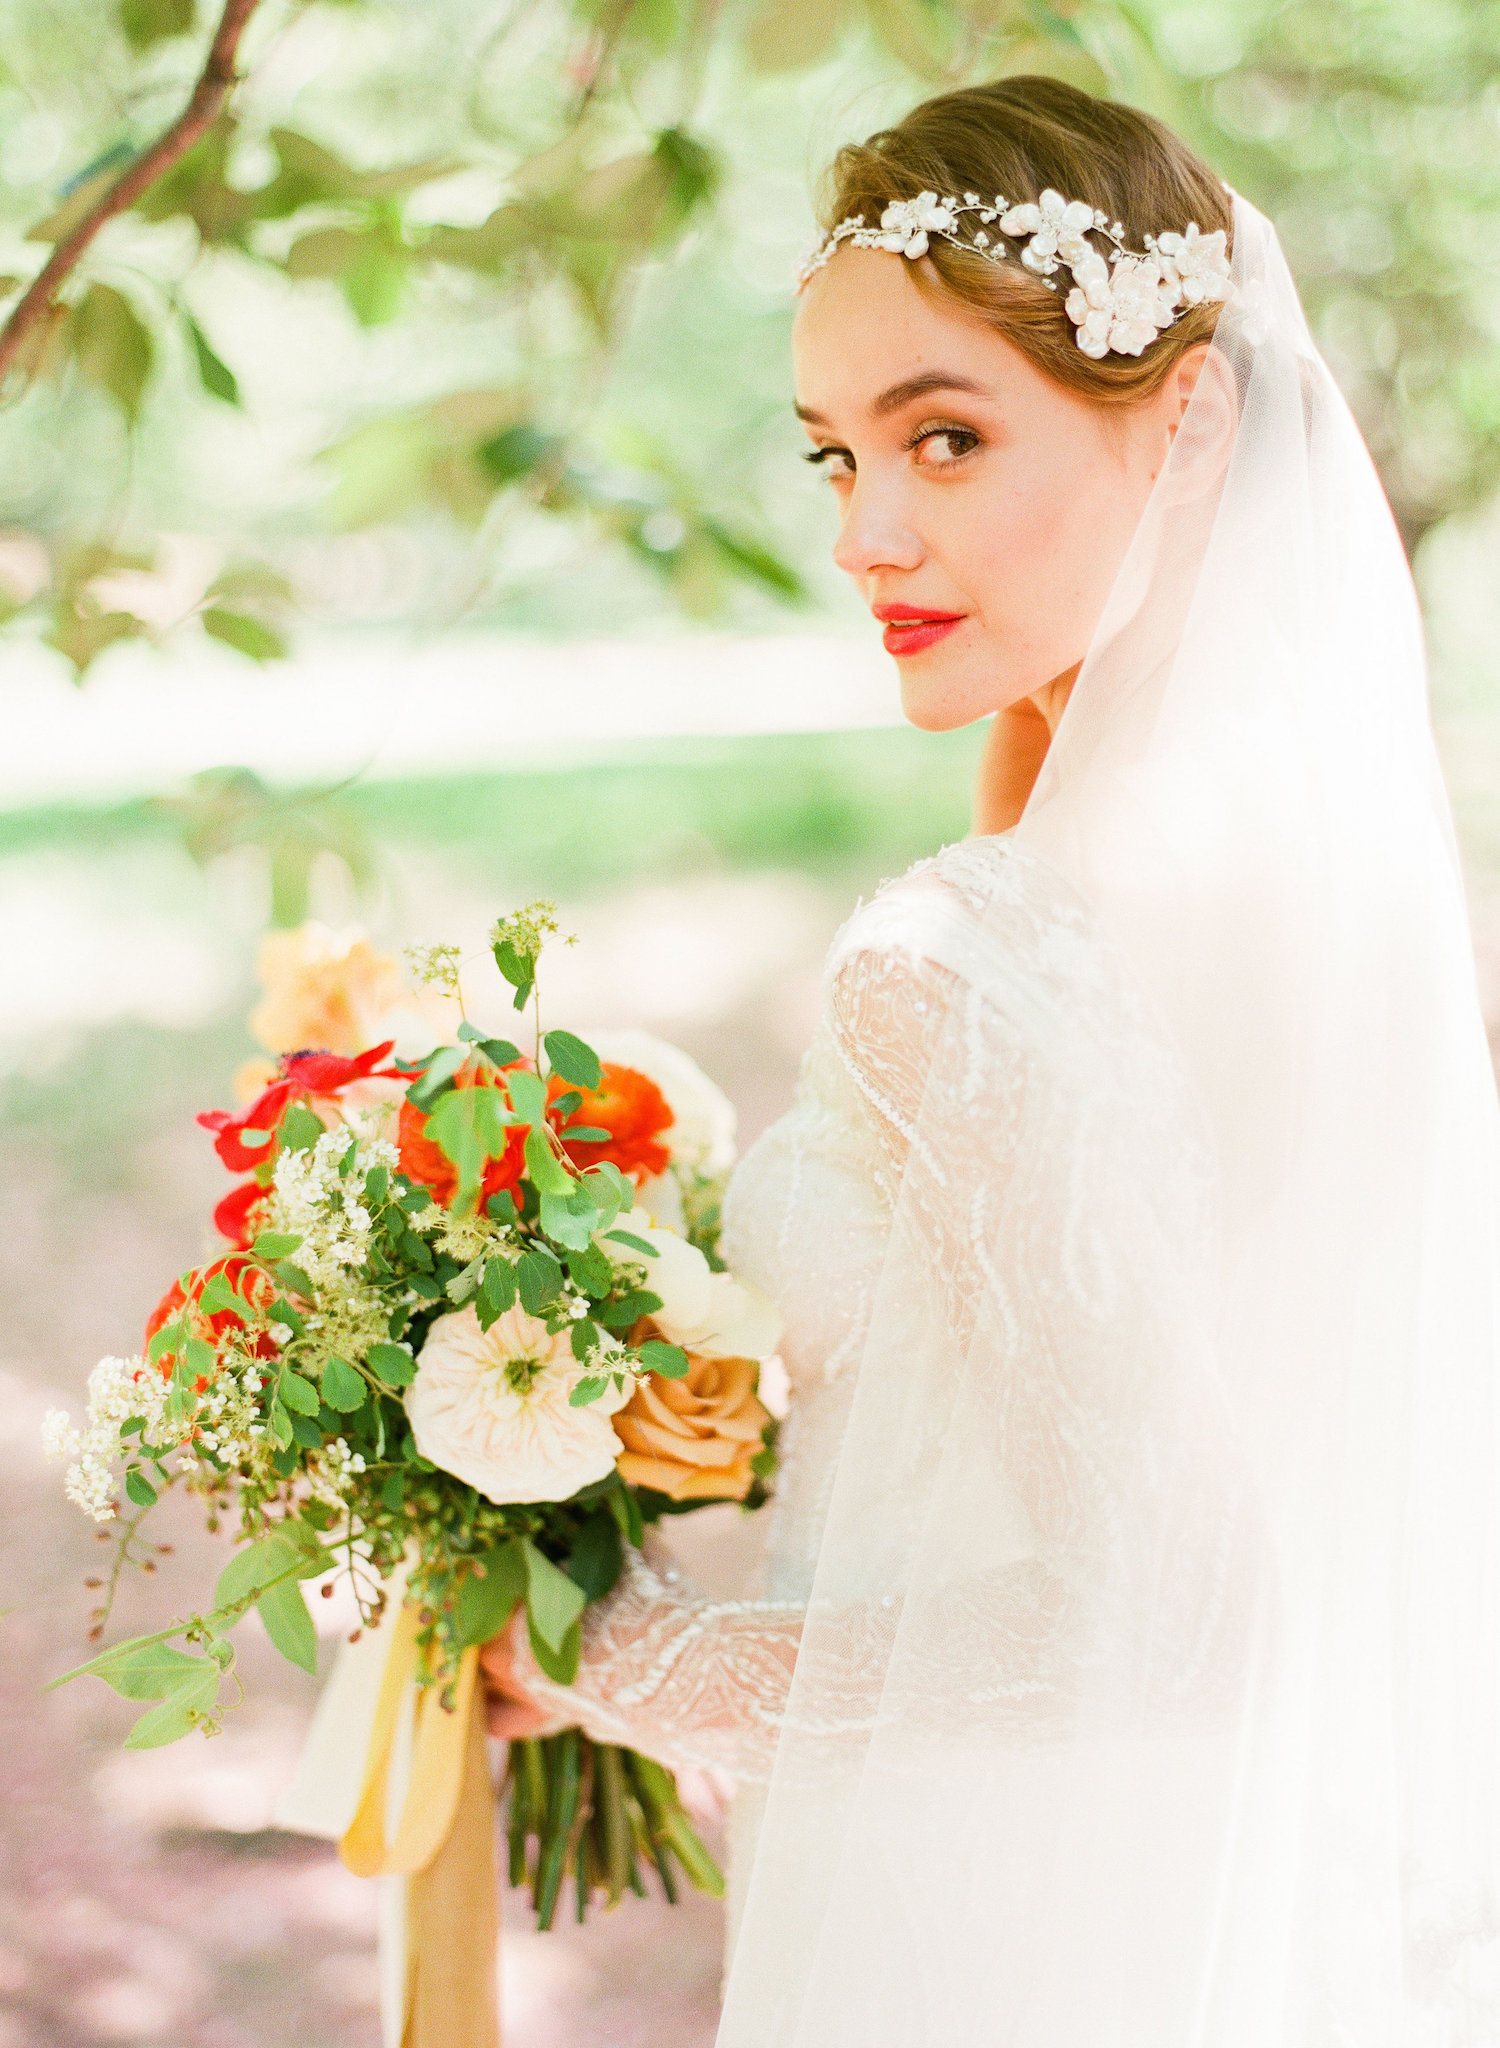 Morning Glow - Full Aperture Floral & Lindsay Madden Photography 15.jpeg